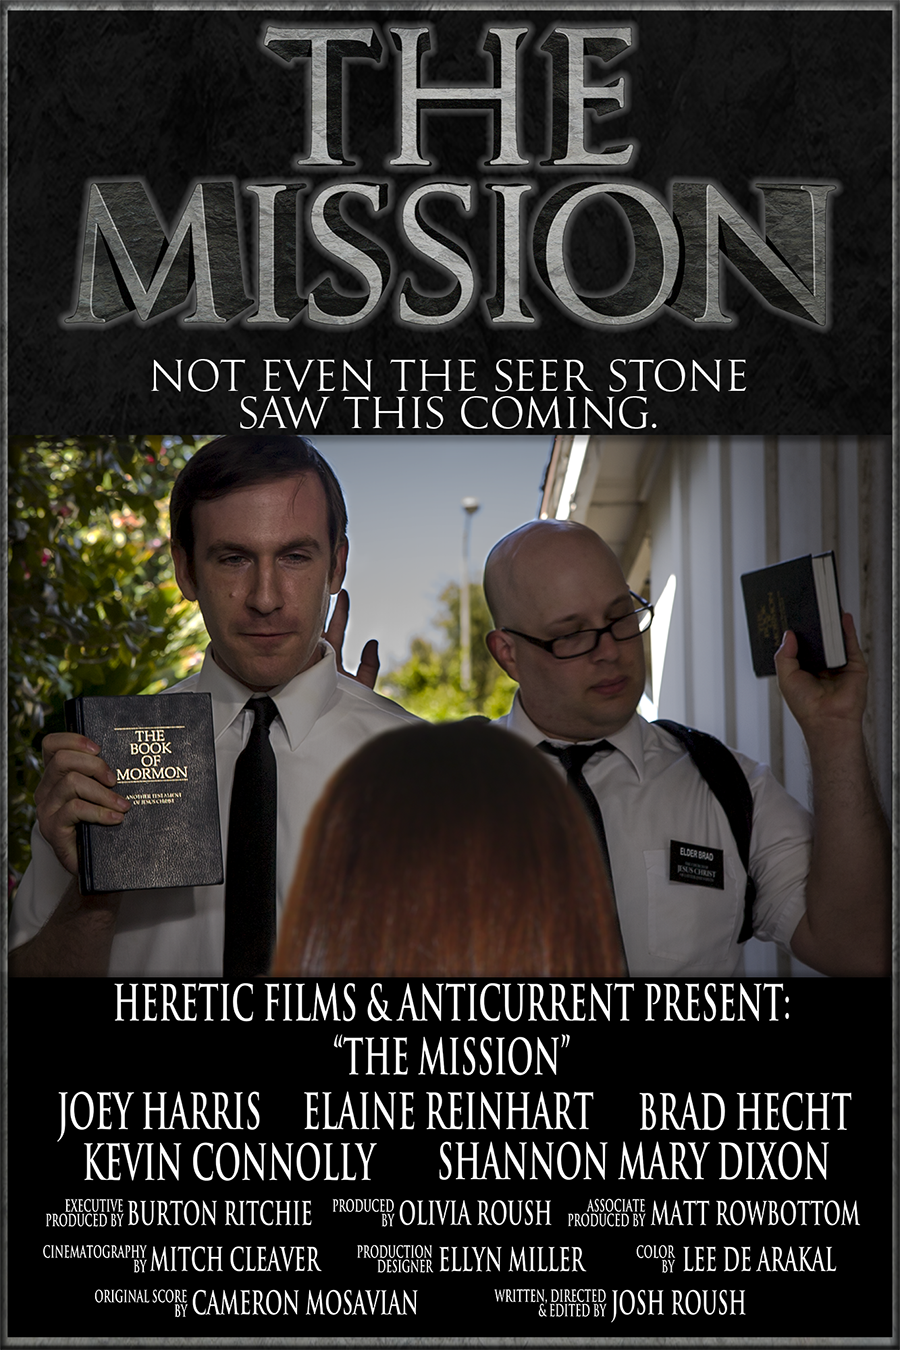 The Mission Short Film by Josh Roush